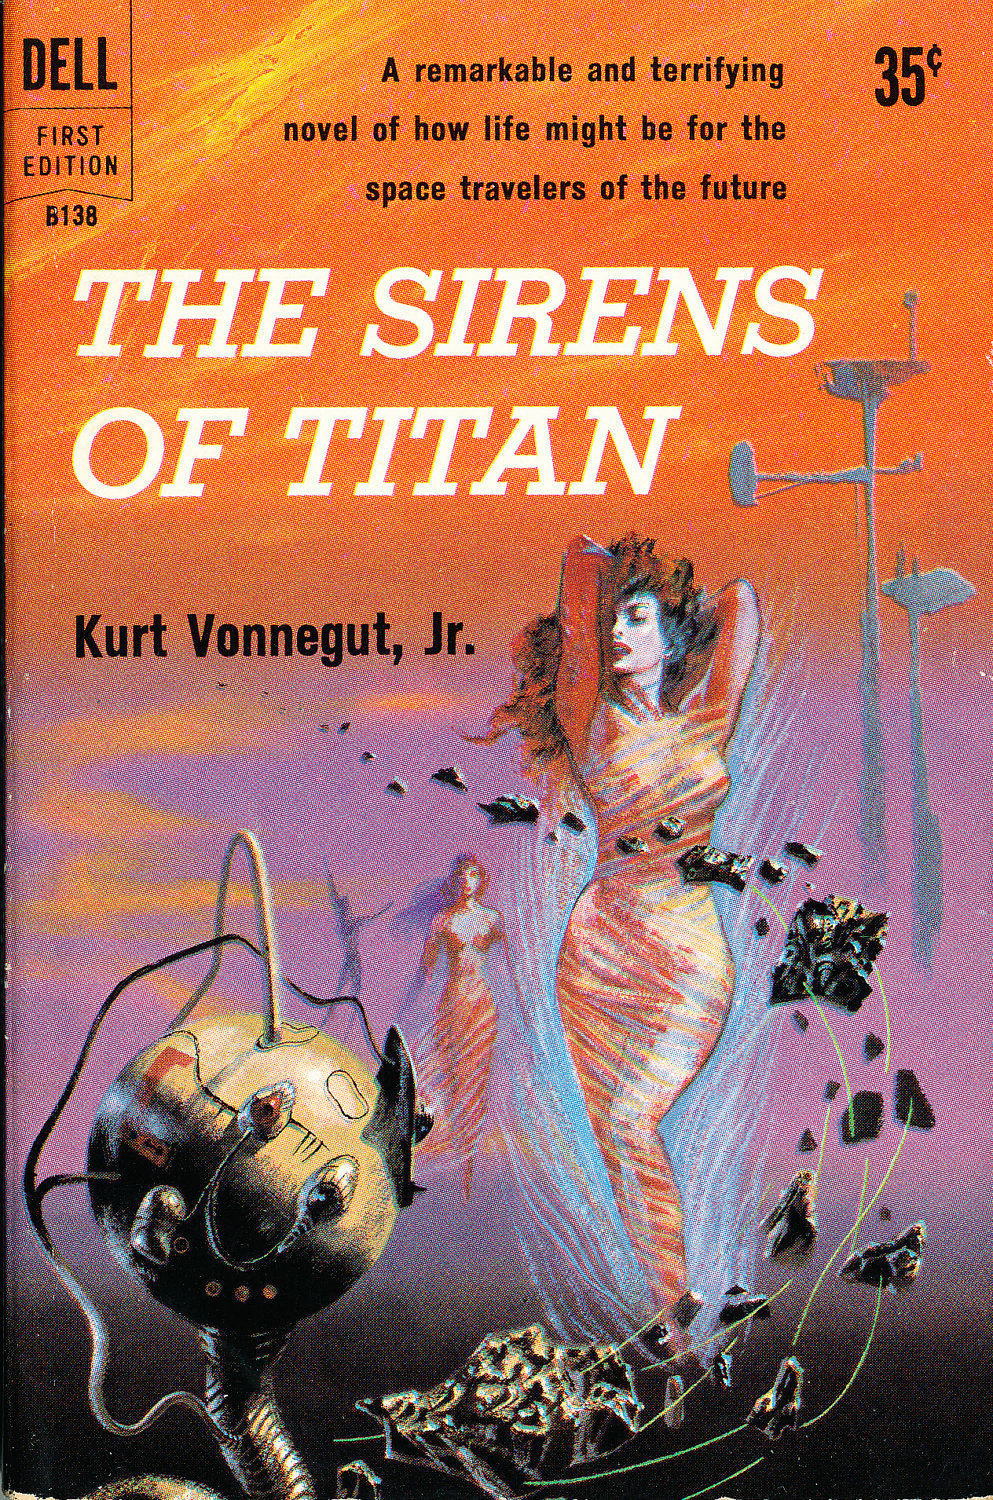 The Sirens of Titan Quotes